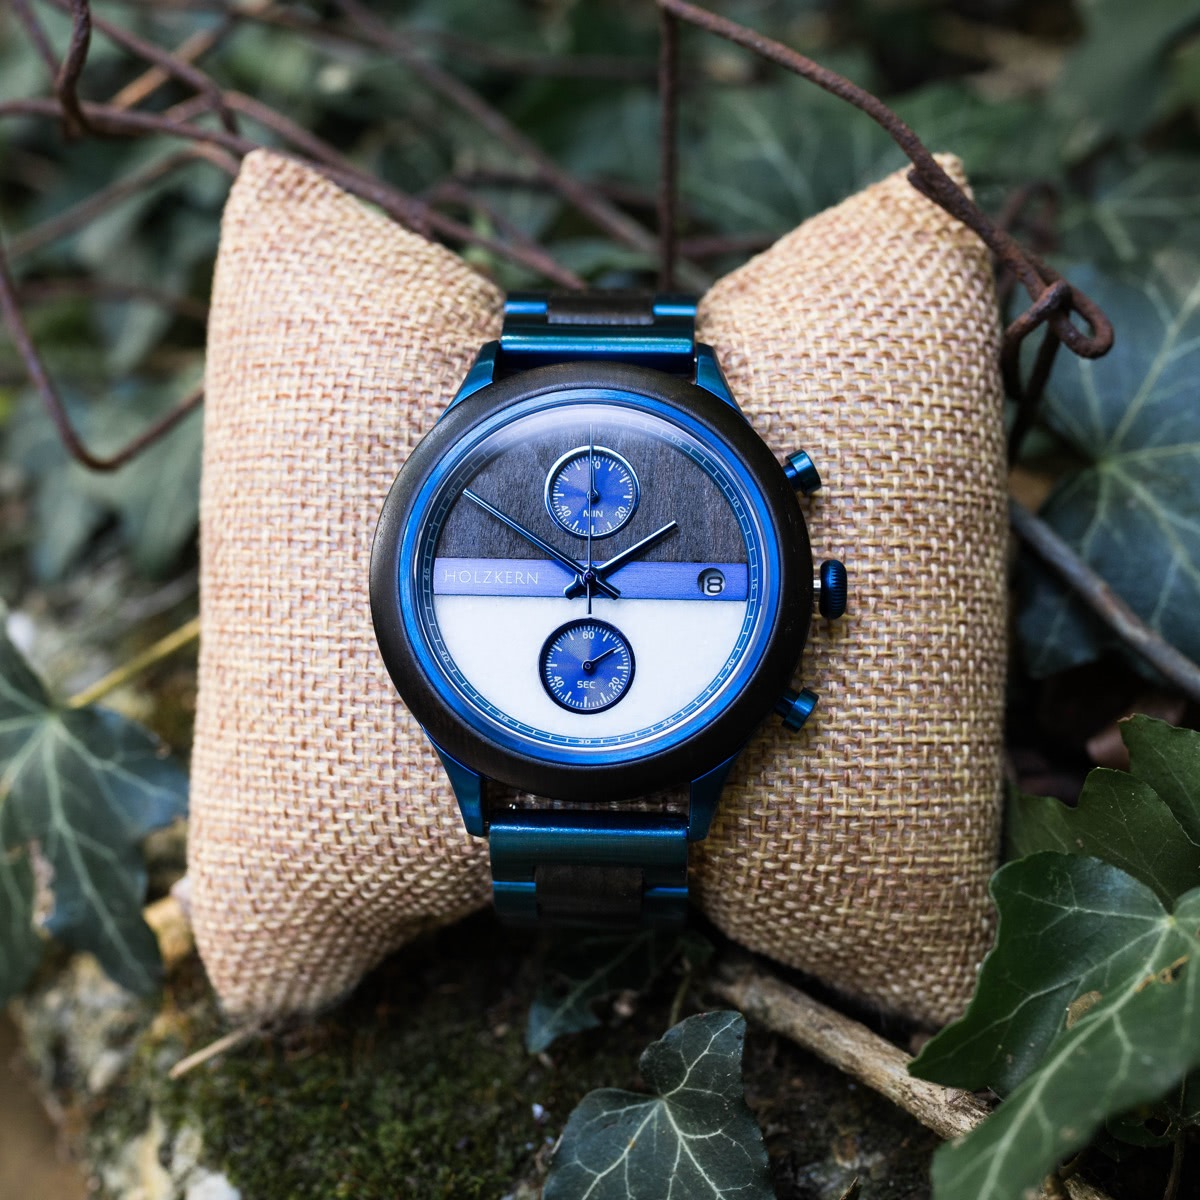 The wooden watch Bixby lies on a jewelry cushion in the forest